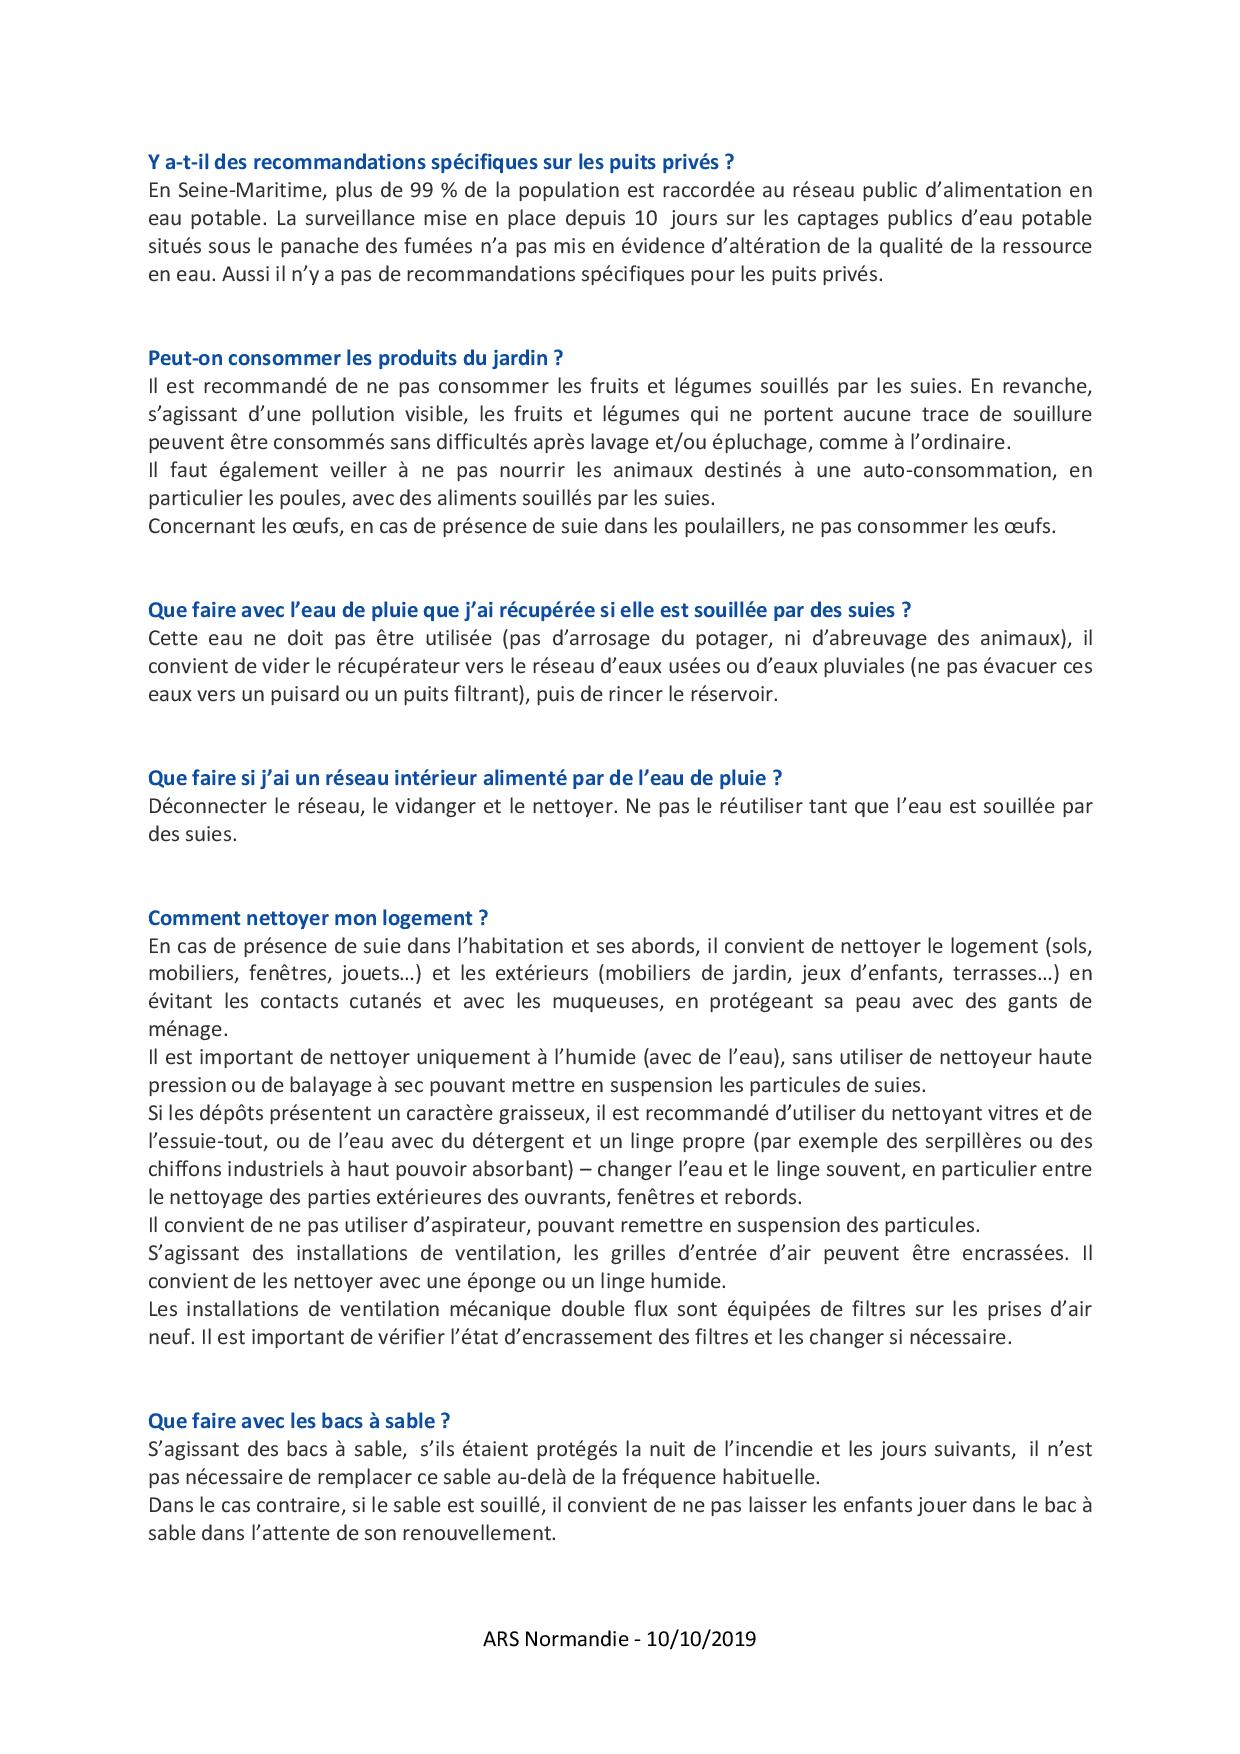 questions-reponses ARS-page-003